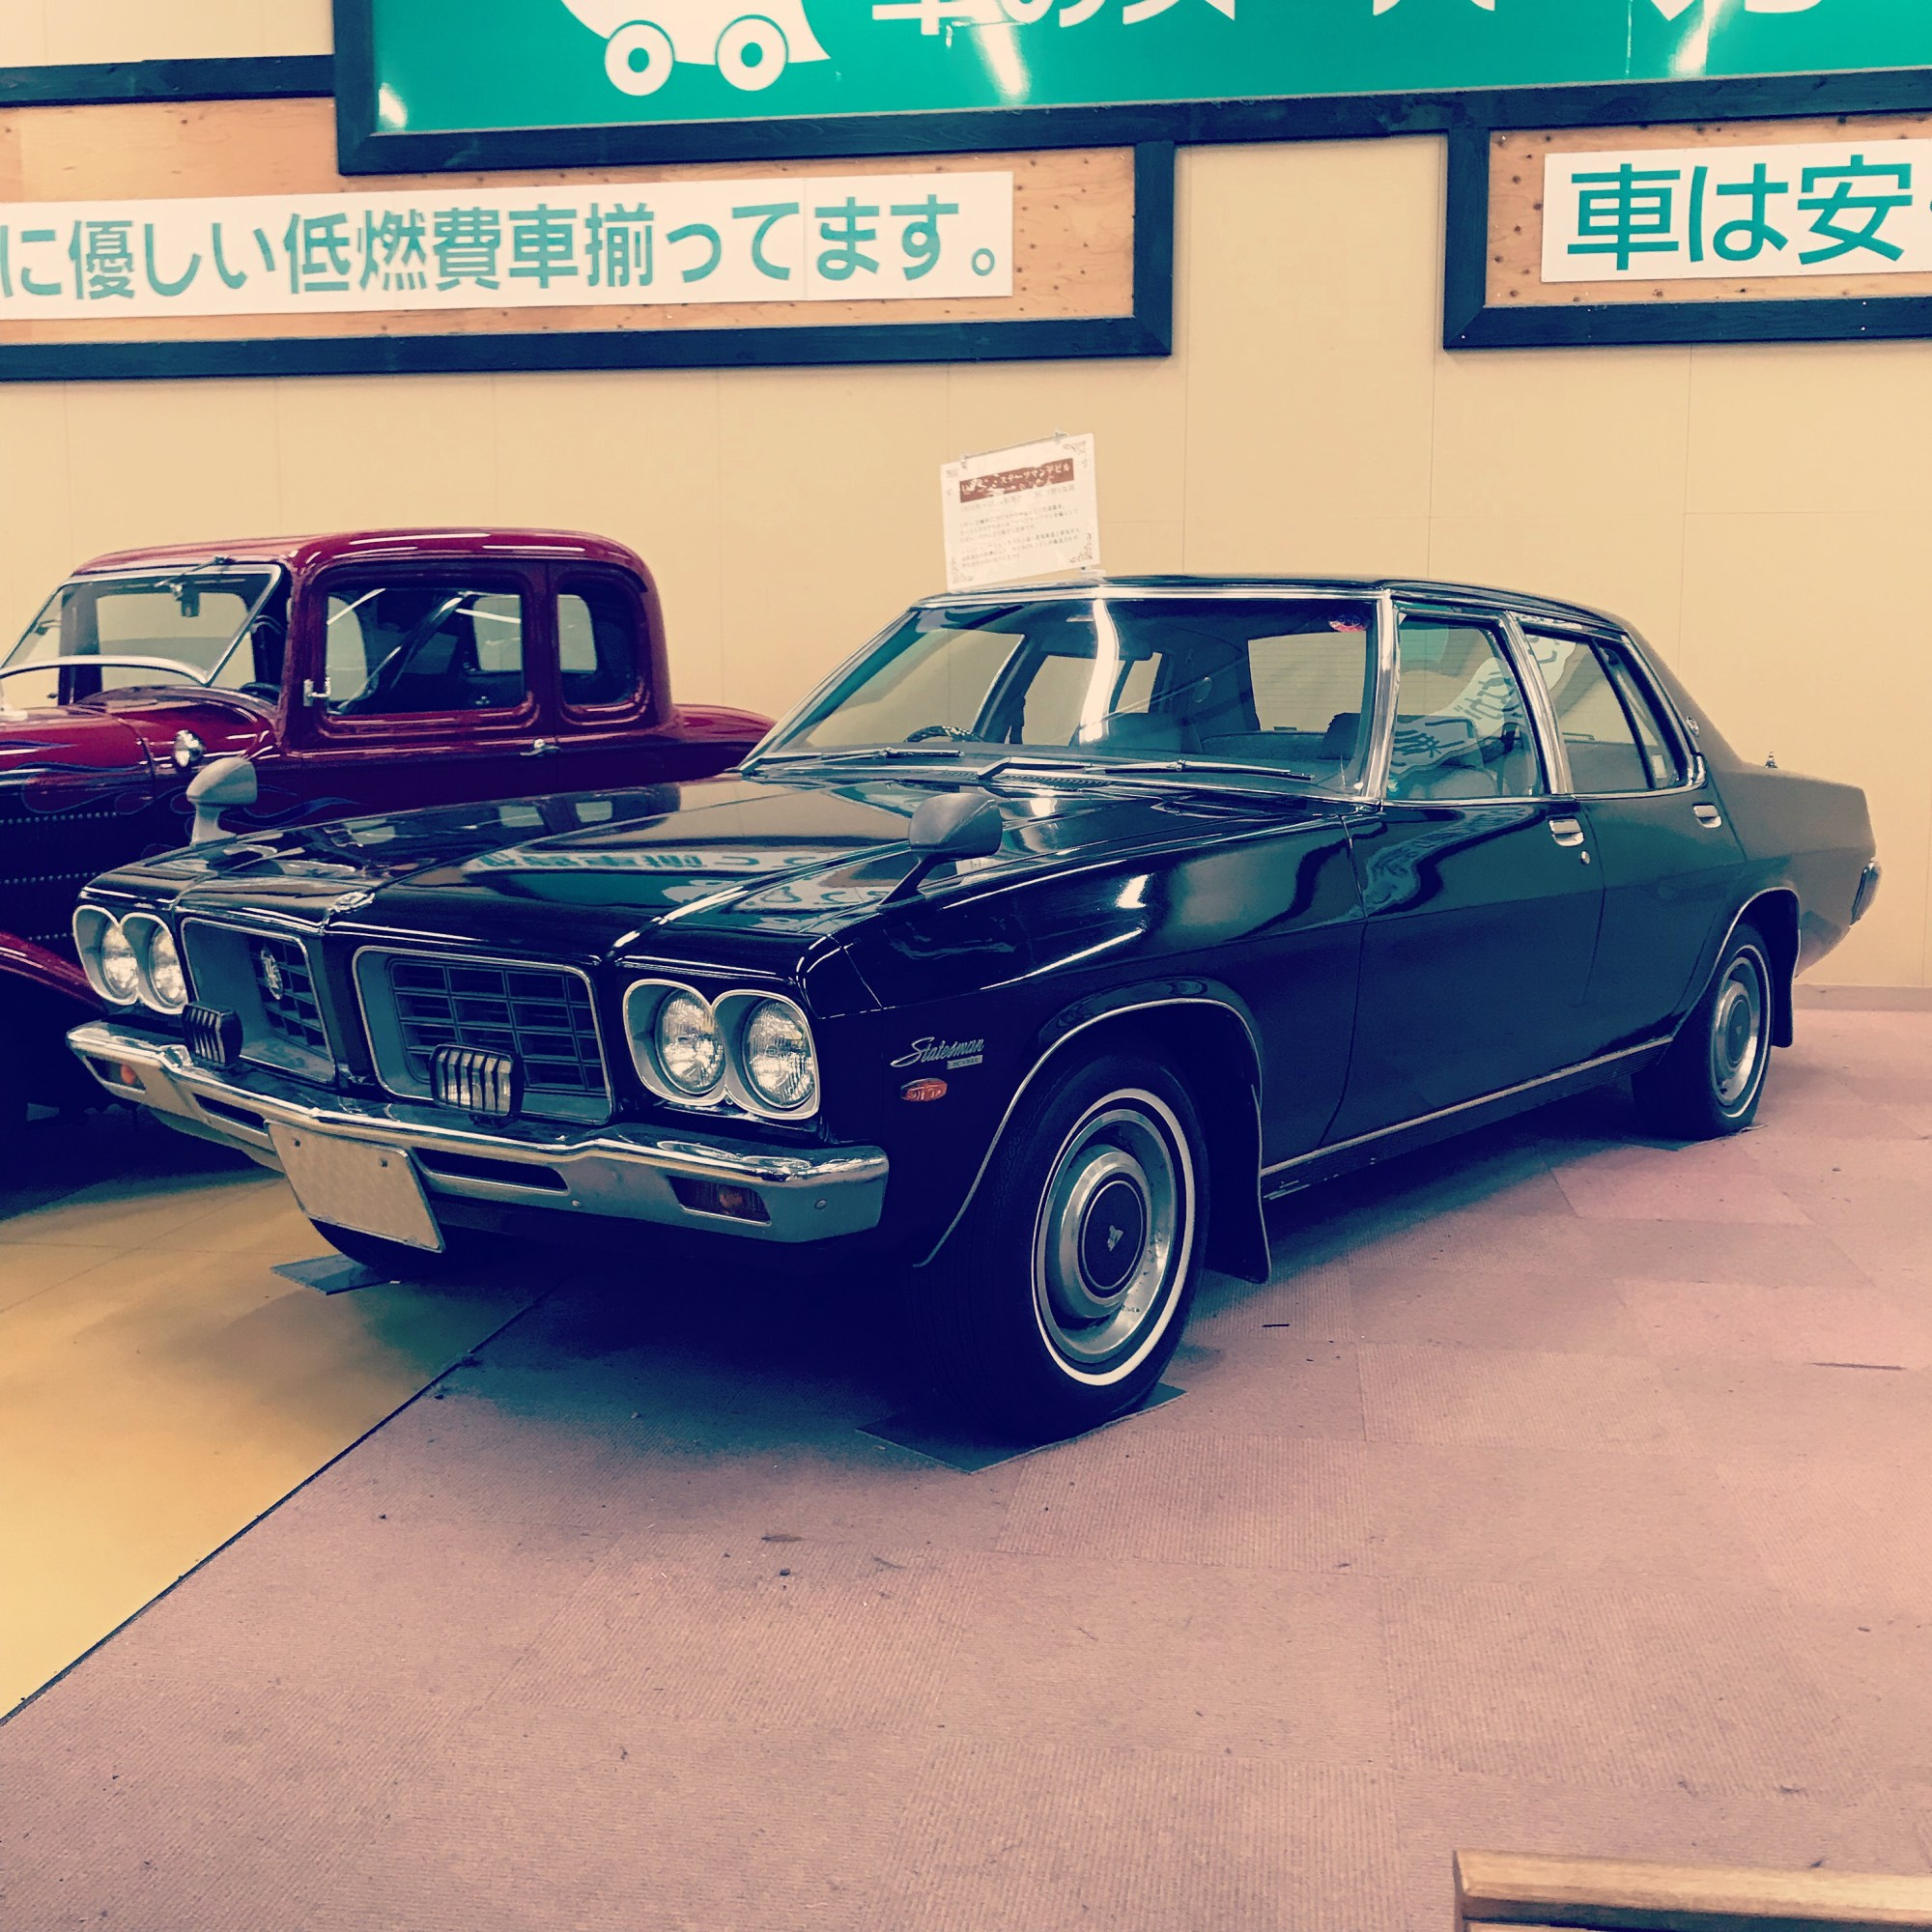 hight resolution of  yes a holden but actually a jdm isuzu statesman deville